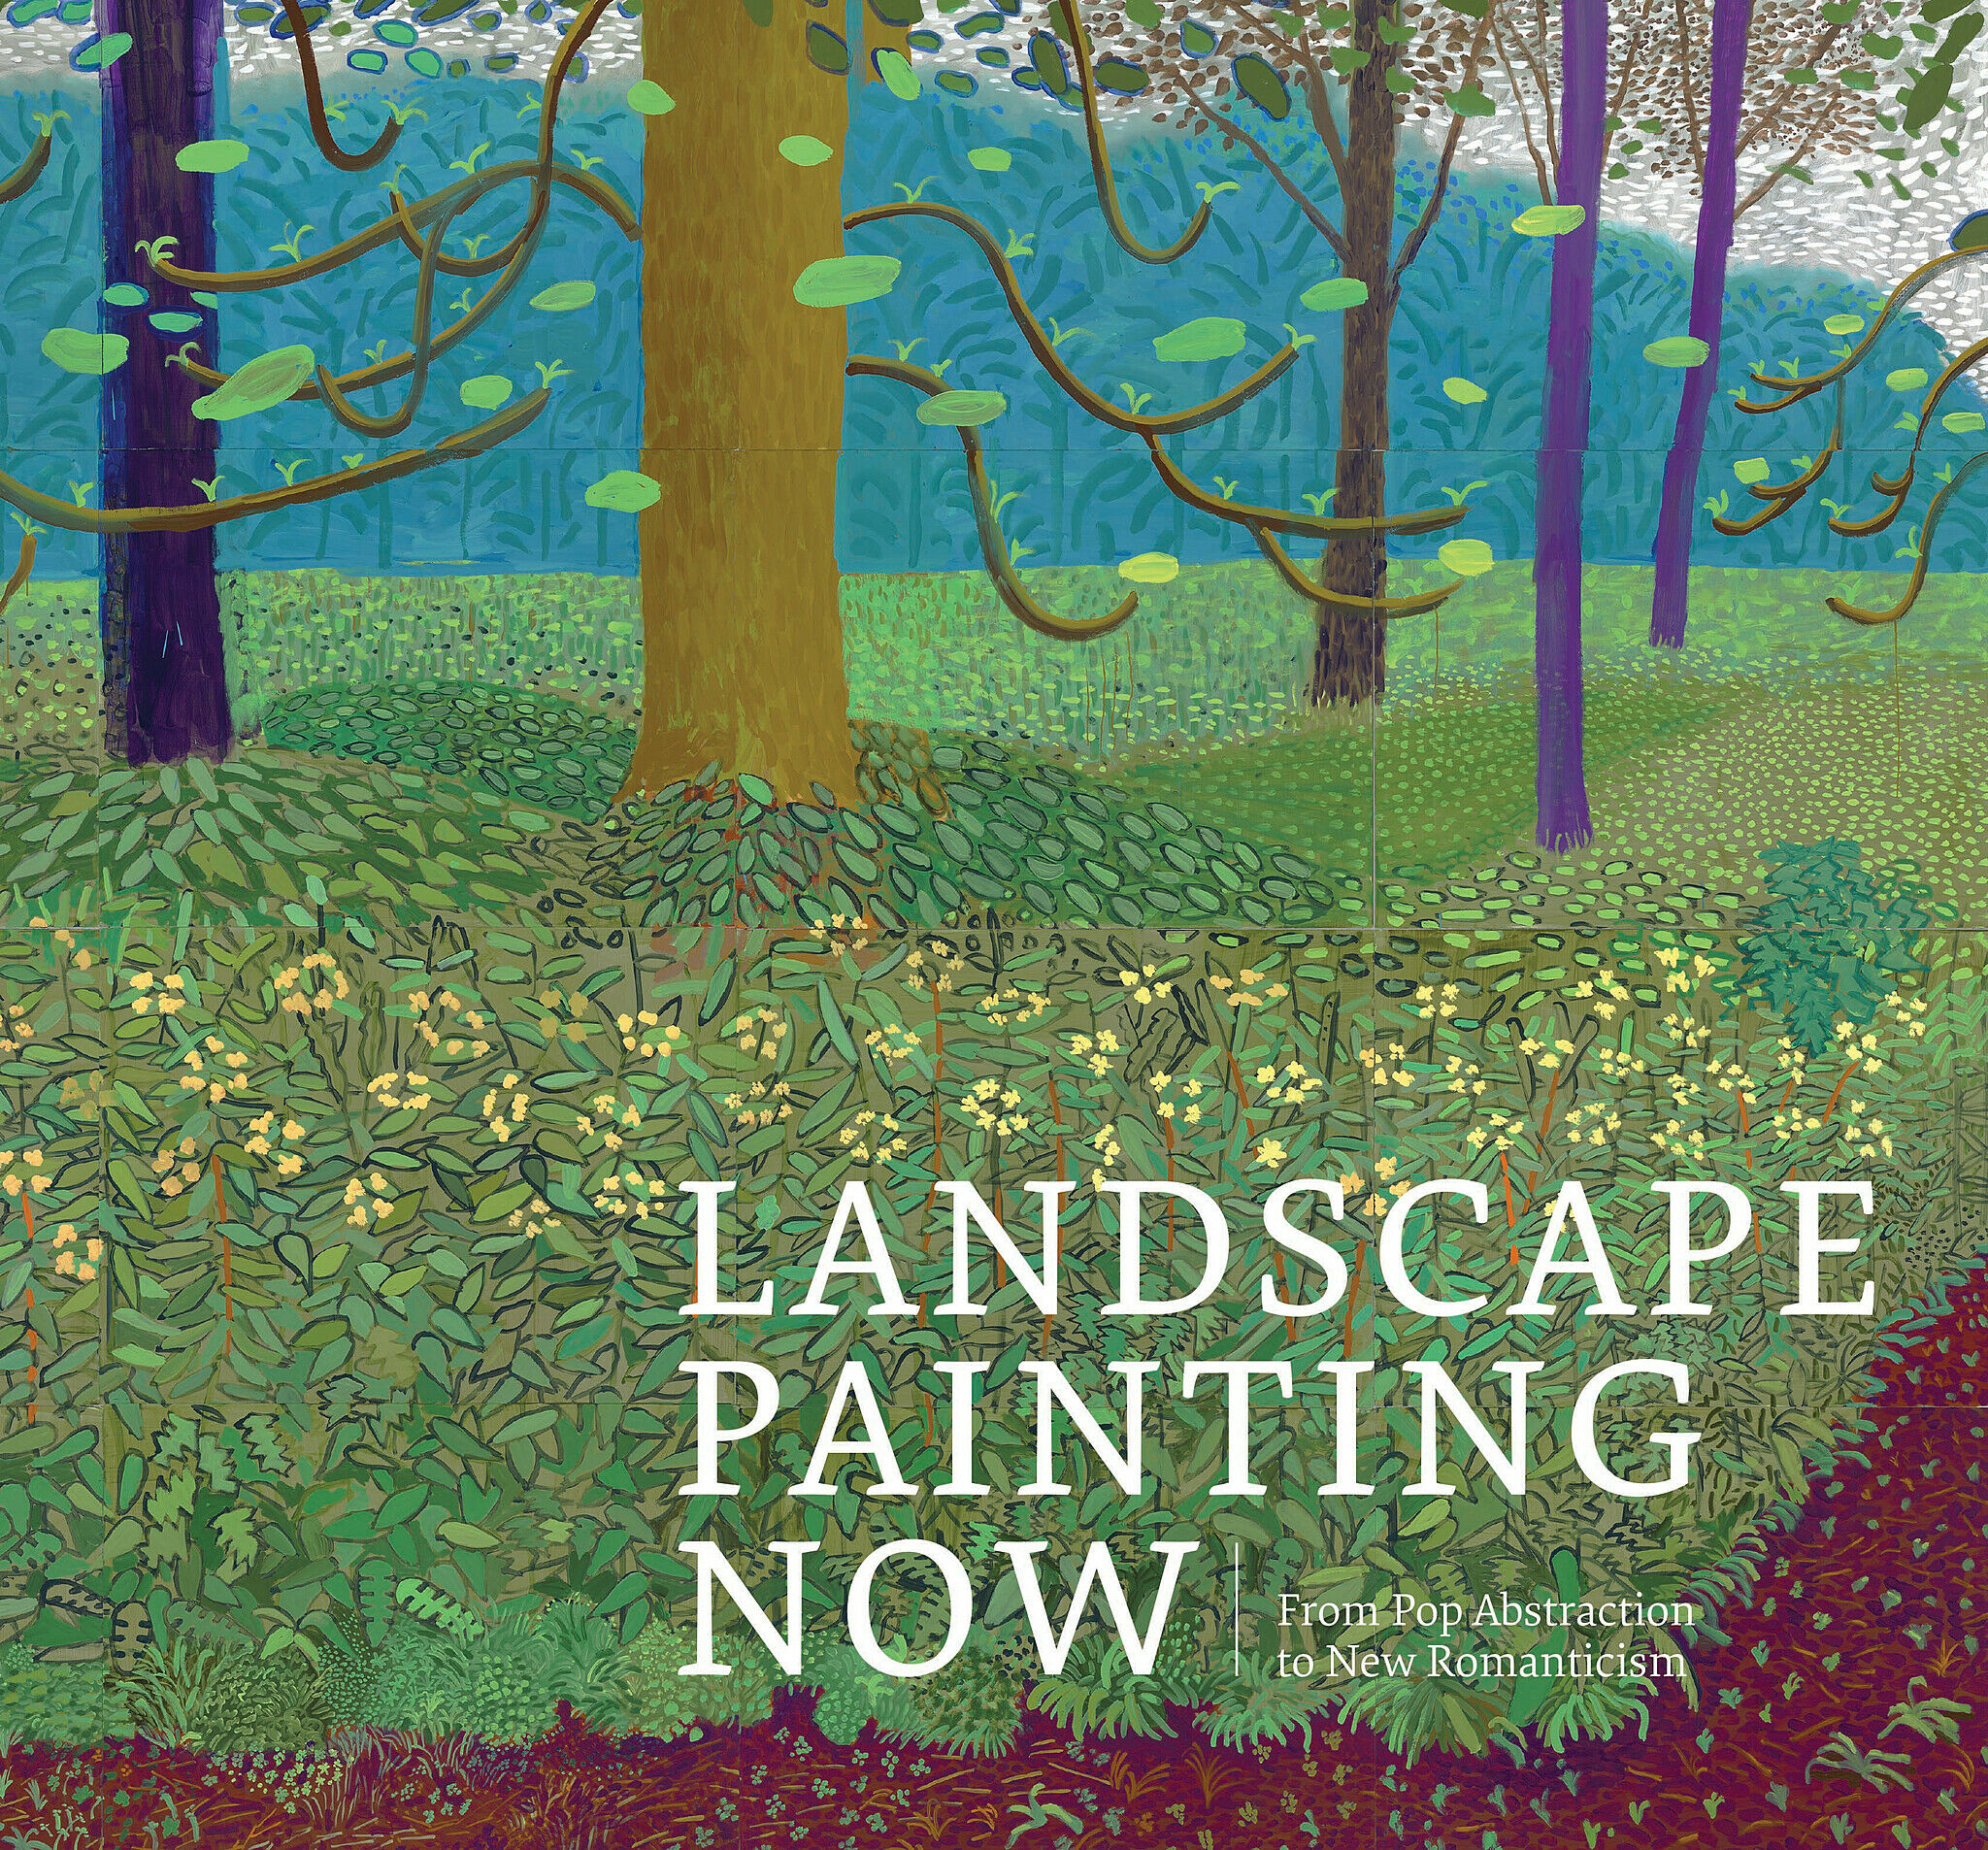 Book cover for Landscape Painting Now, featuring David Hockney's artwork Under the Trees, Bigger.